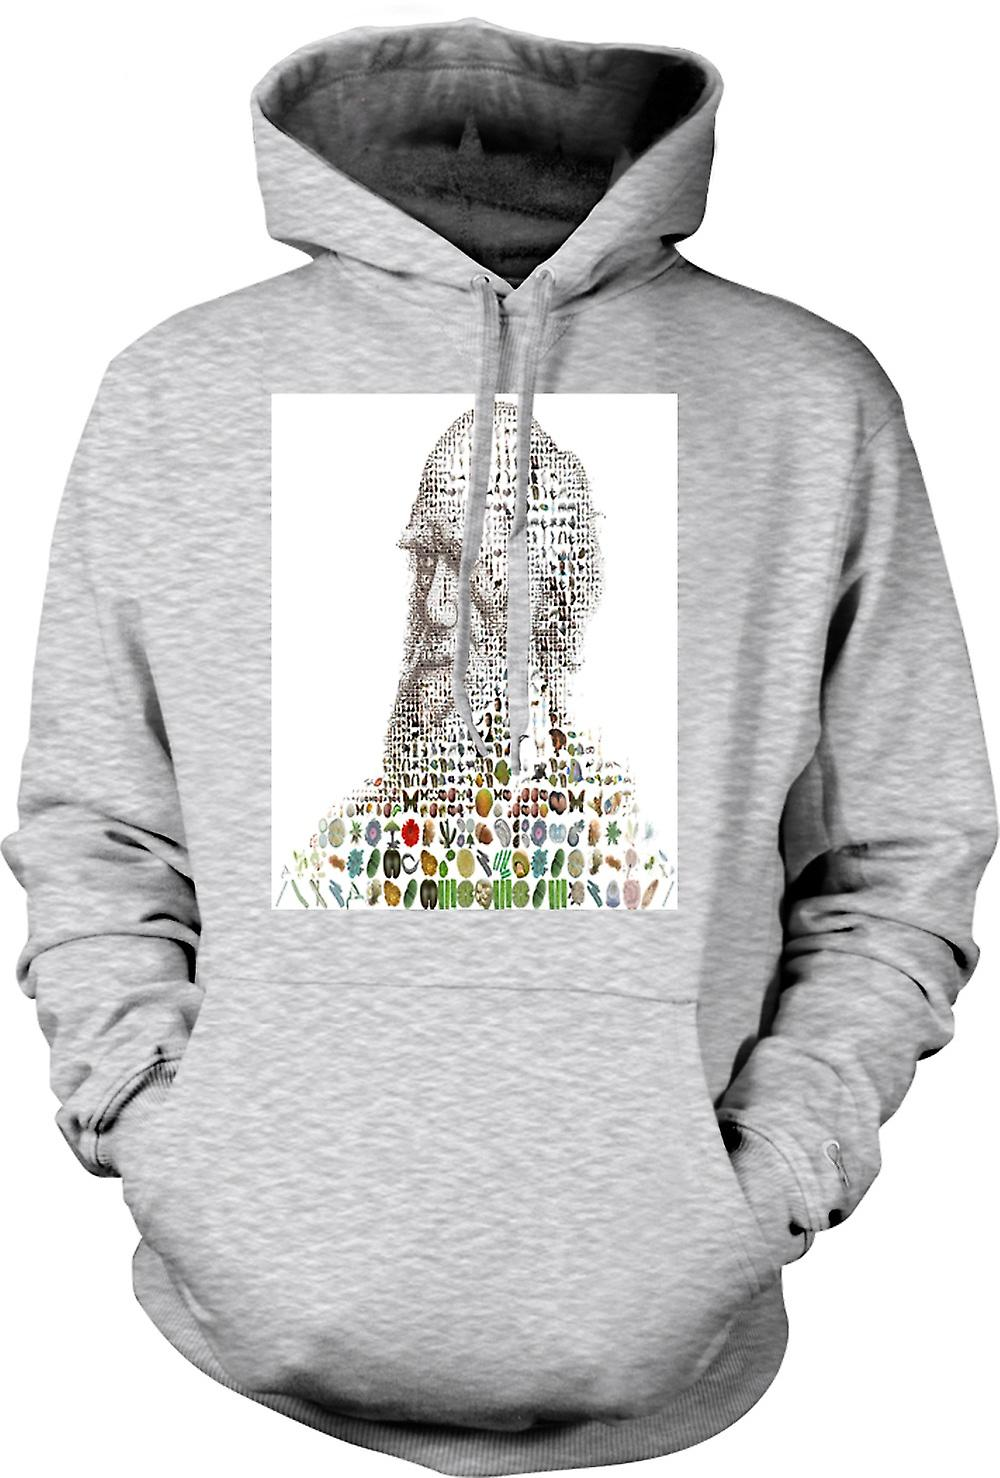 Mens Hoodie - Darwin Evolution - Cool Design